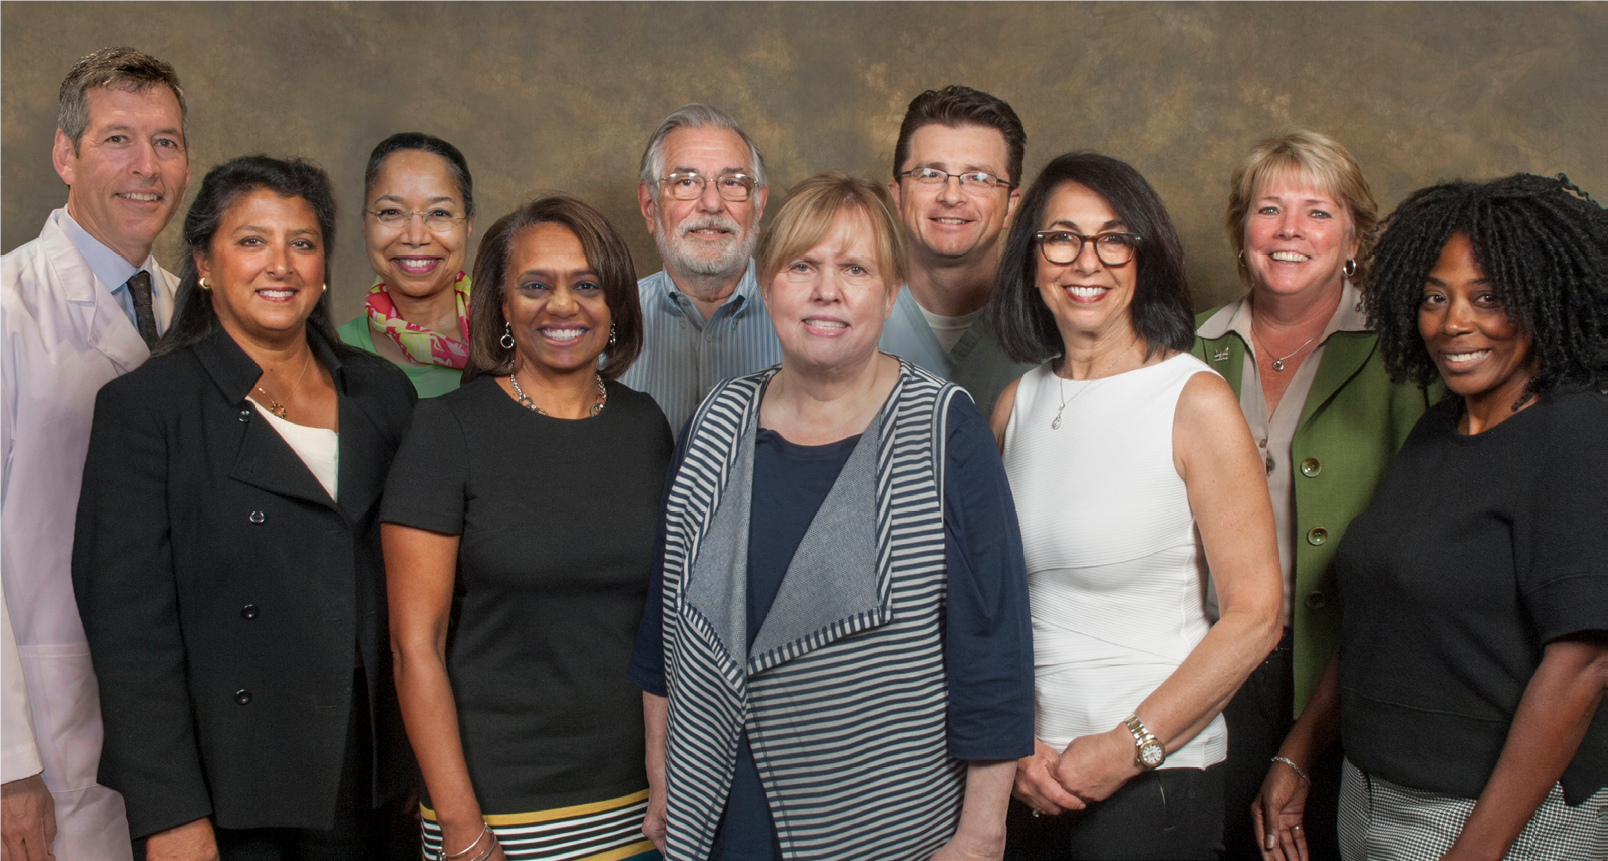 Medical Alumni Association 2018 Year in Review